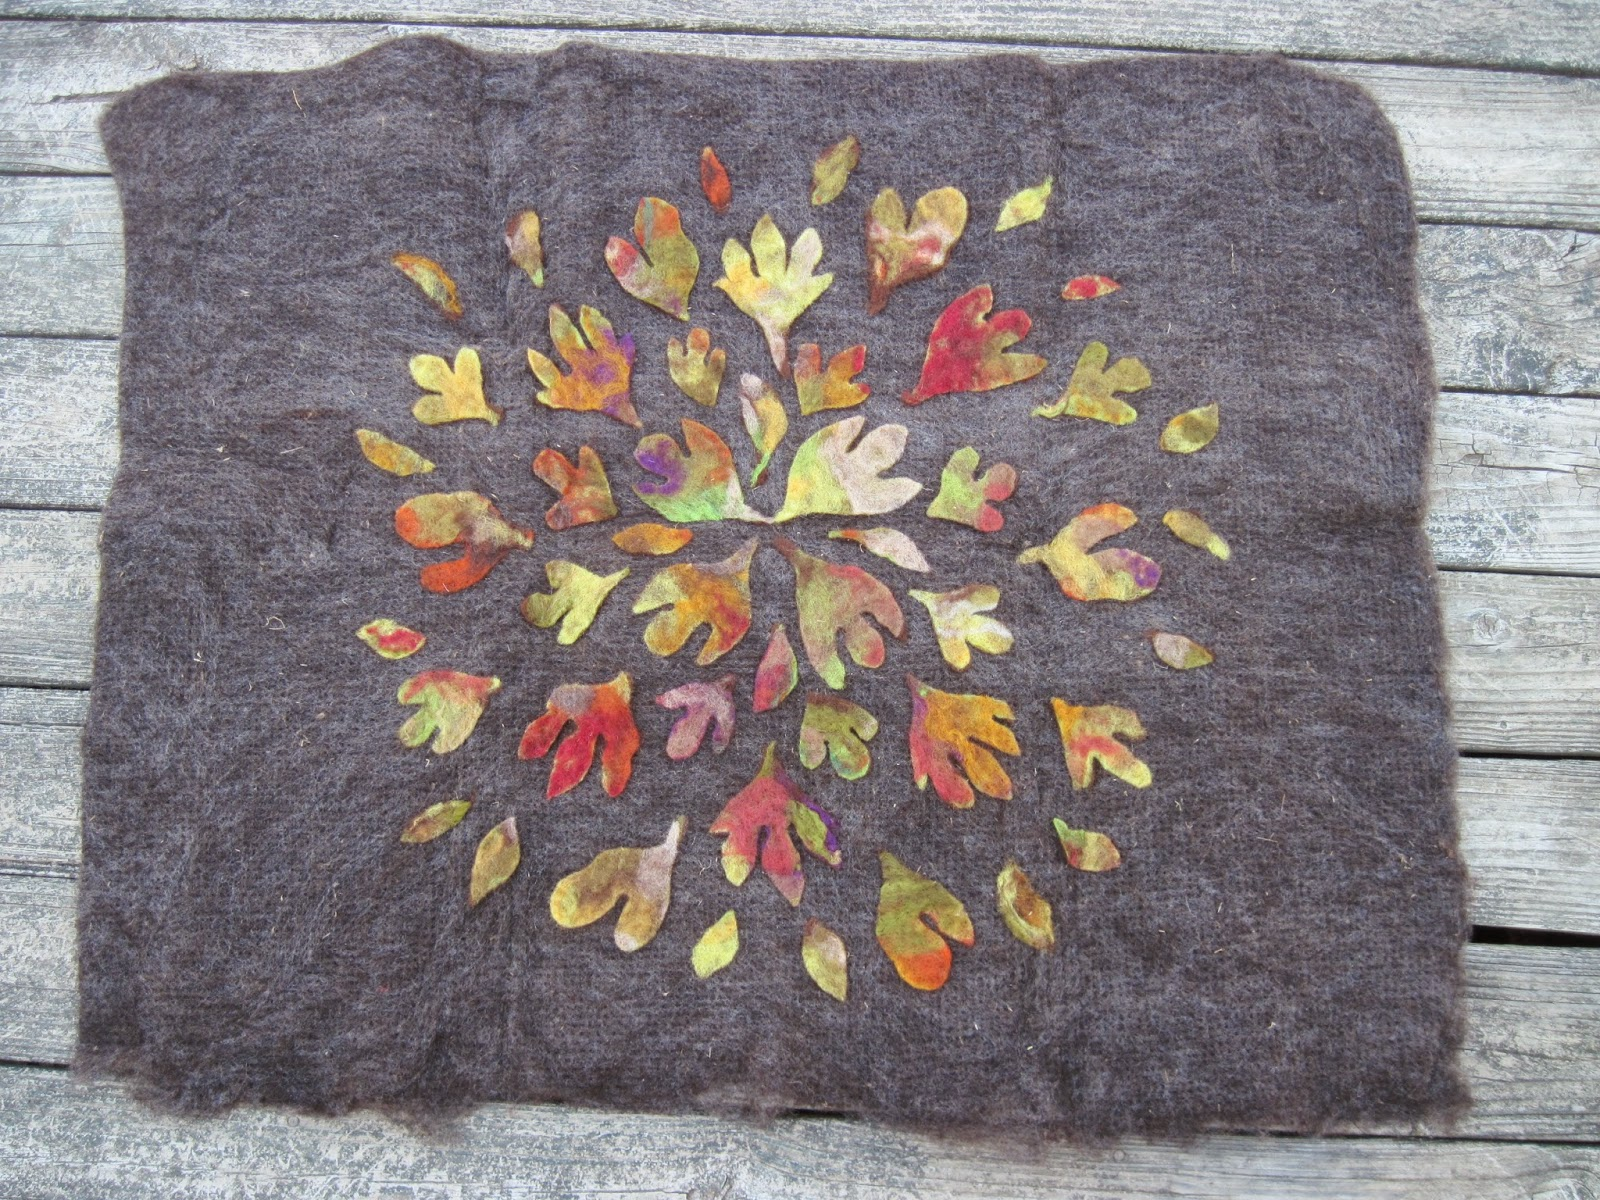 Gefilzte Teppiche Felted Rugs - Home Decor